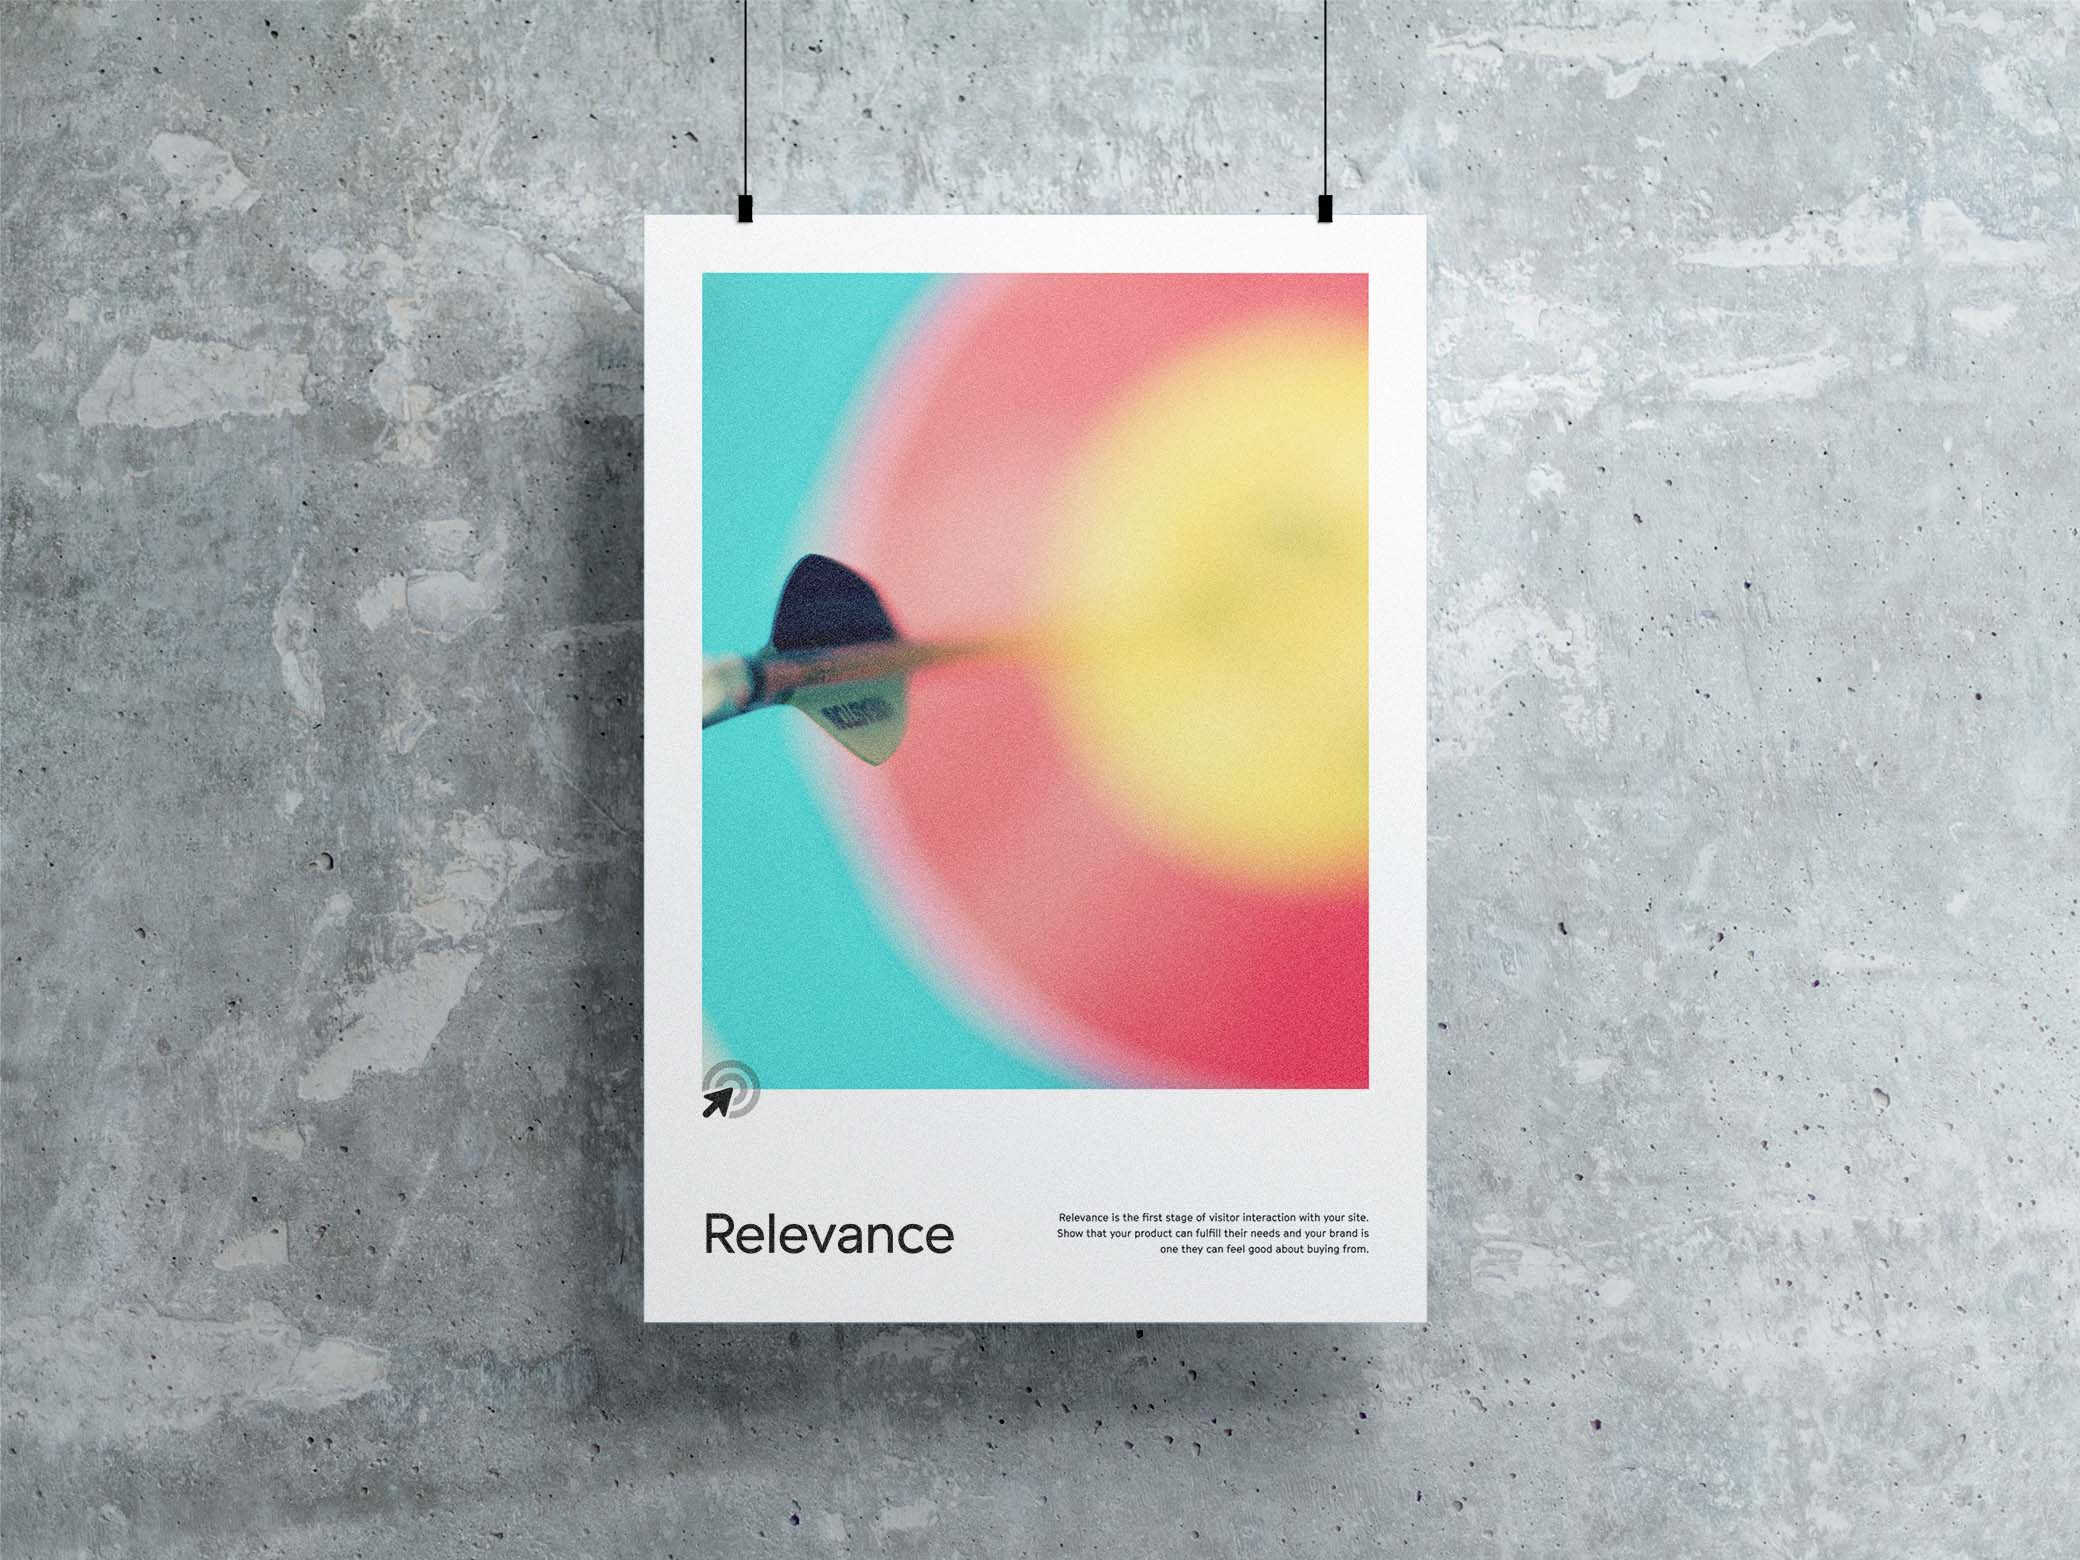 Relevance poster with a blurry target in the background and a dart near the center